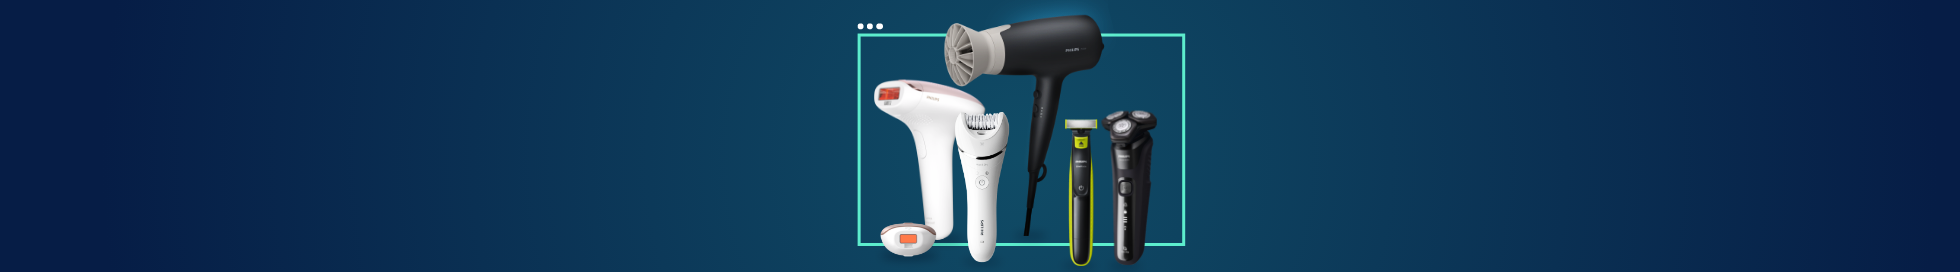 Ofertas Outlet Philips